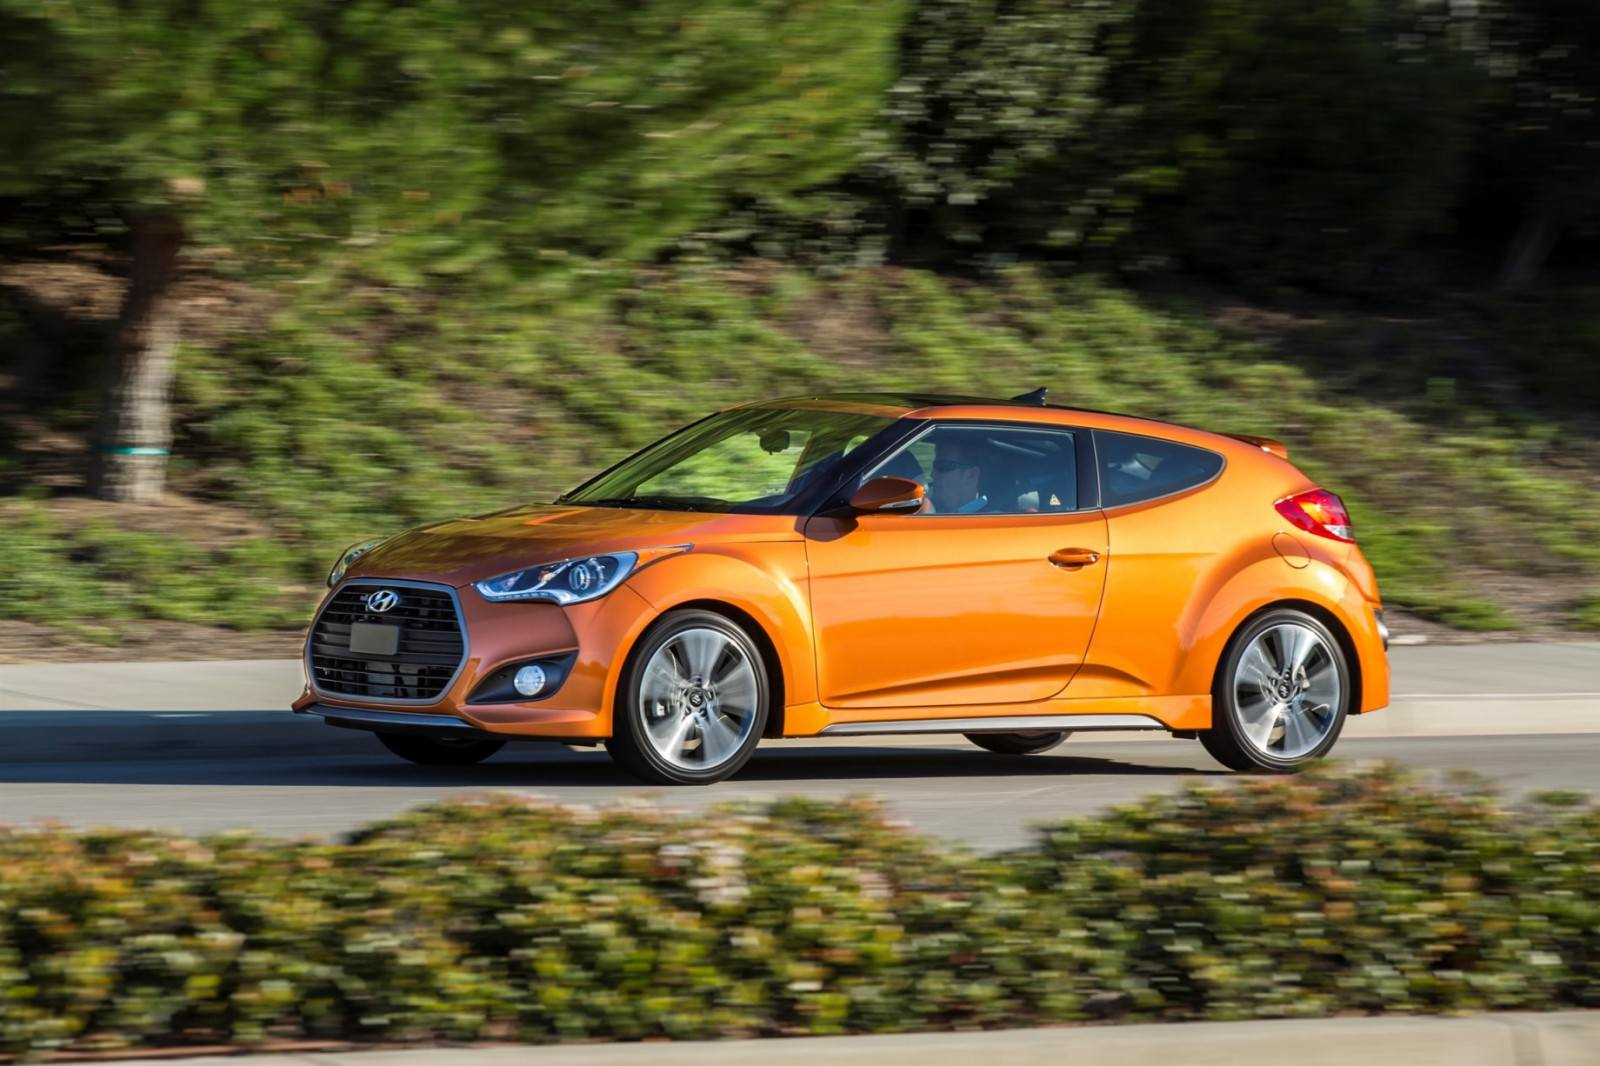 2016 hyundai veloster rally edition. Black Bedroom Furniture Sets. Home Design Ideas